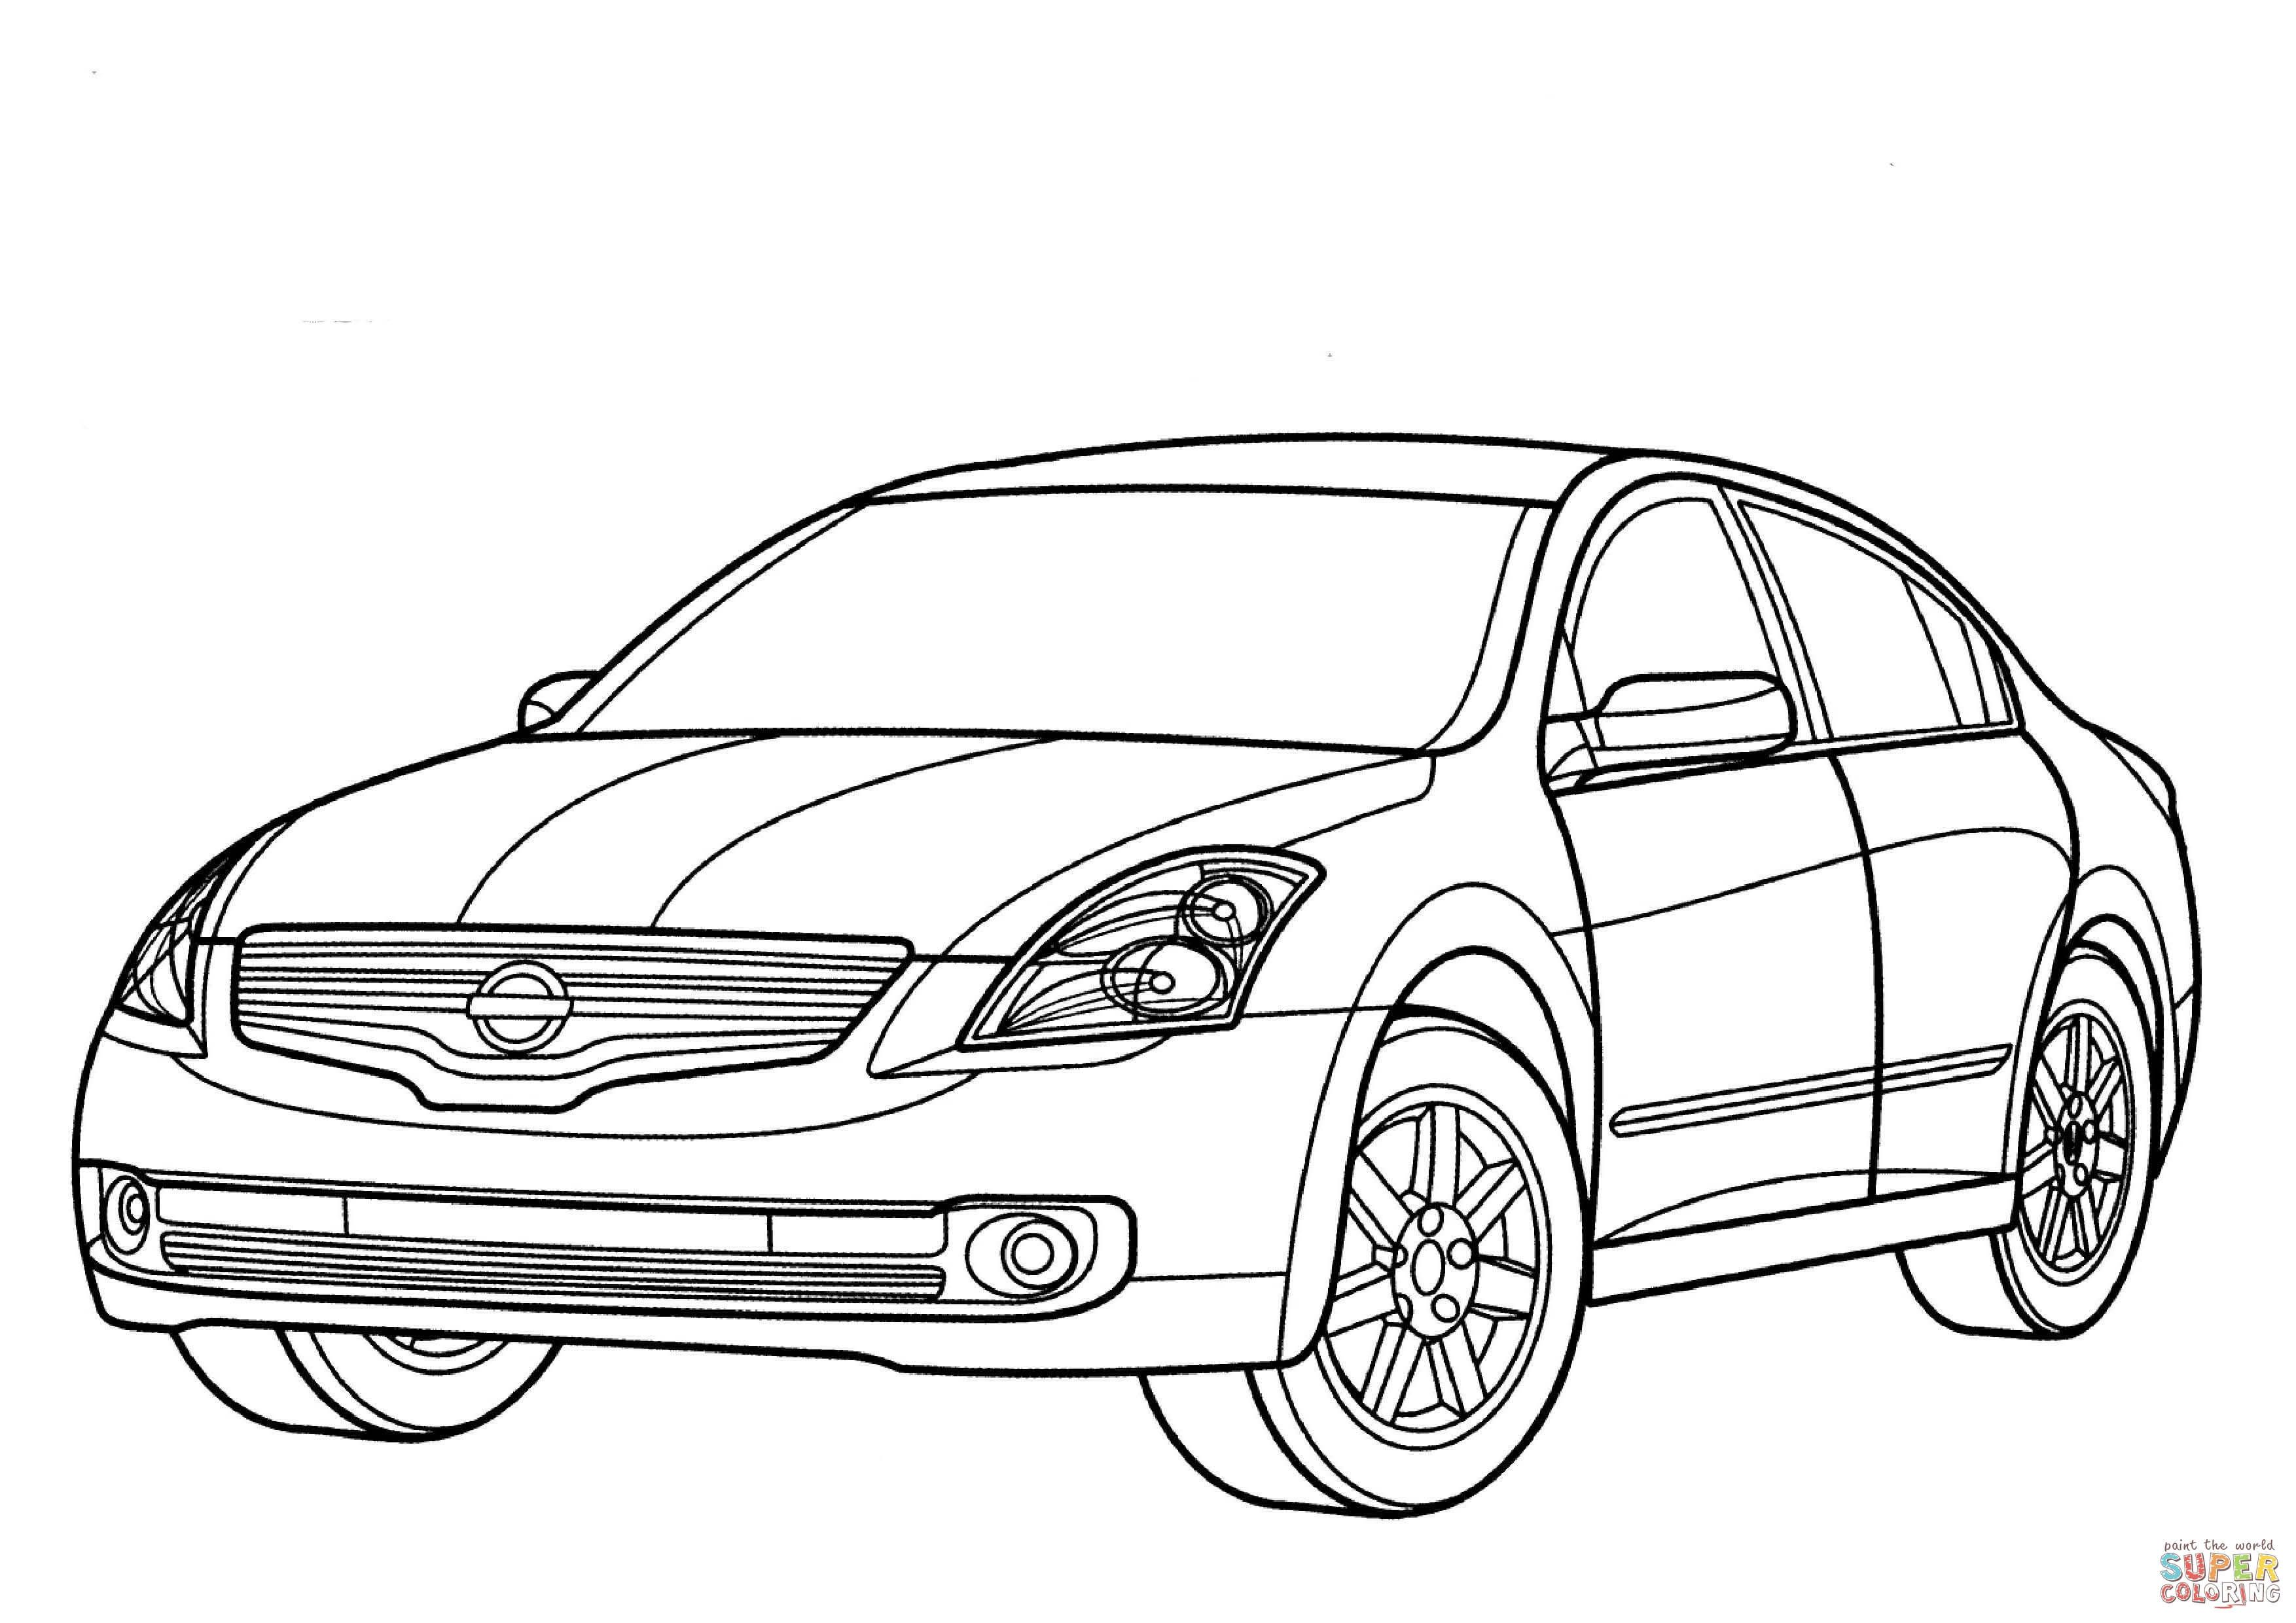 S13 Drifter By Slidingmy240sx On Deviantart Coloring Pages Nissan